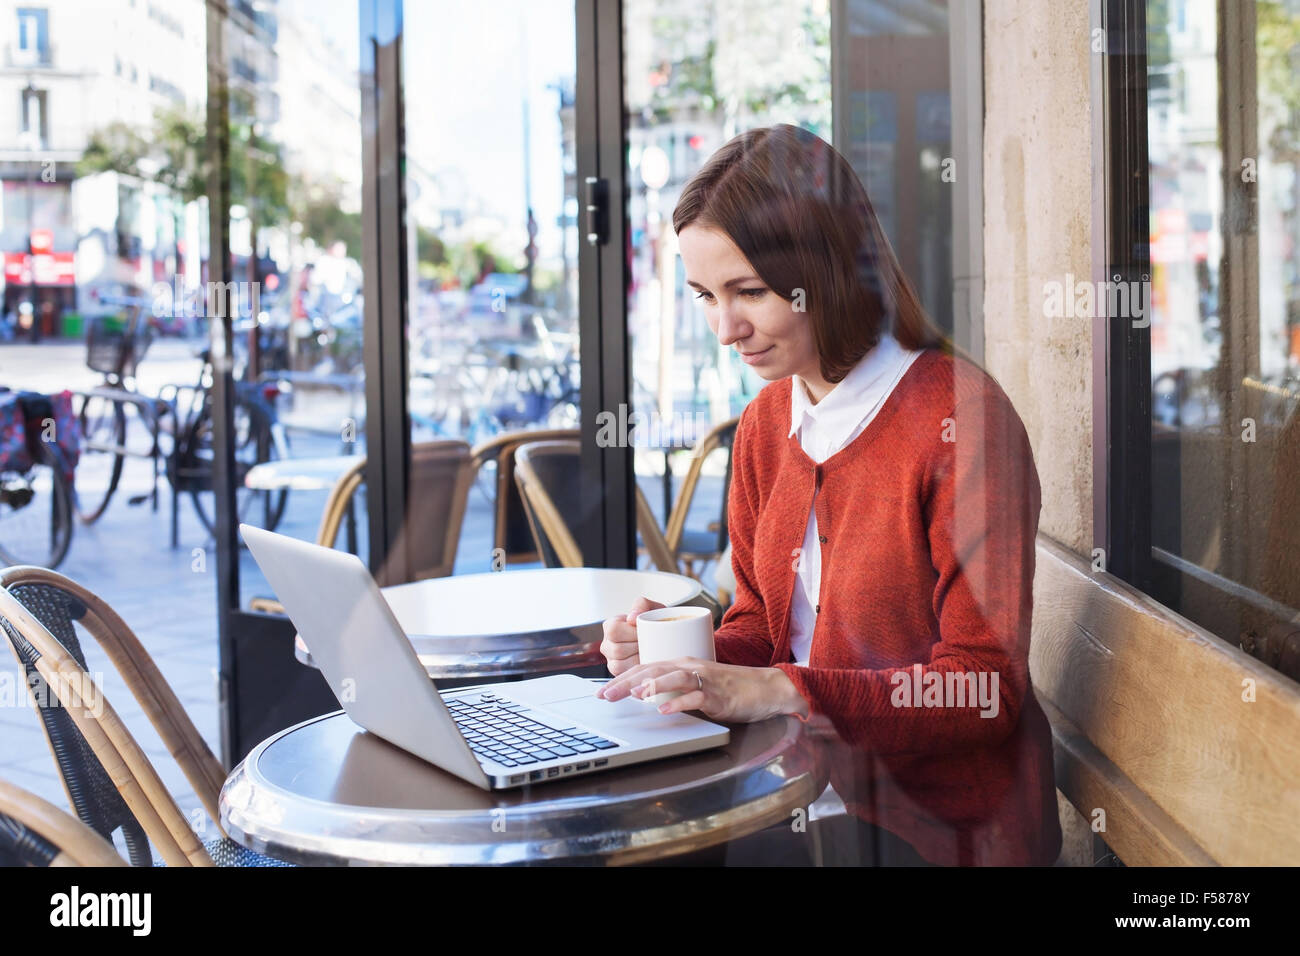 young woman working with laptop in cafe Stock Photo